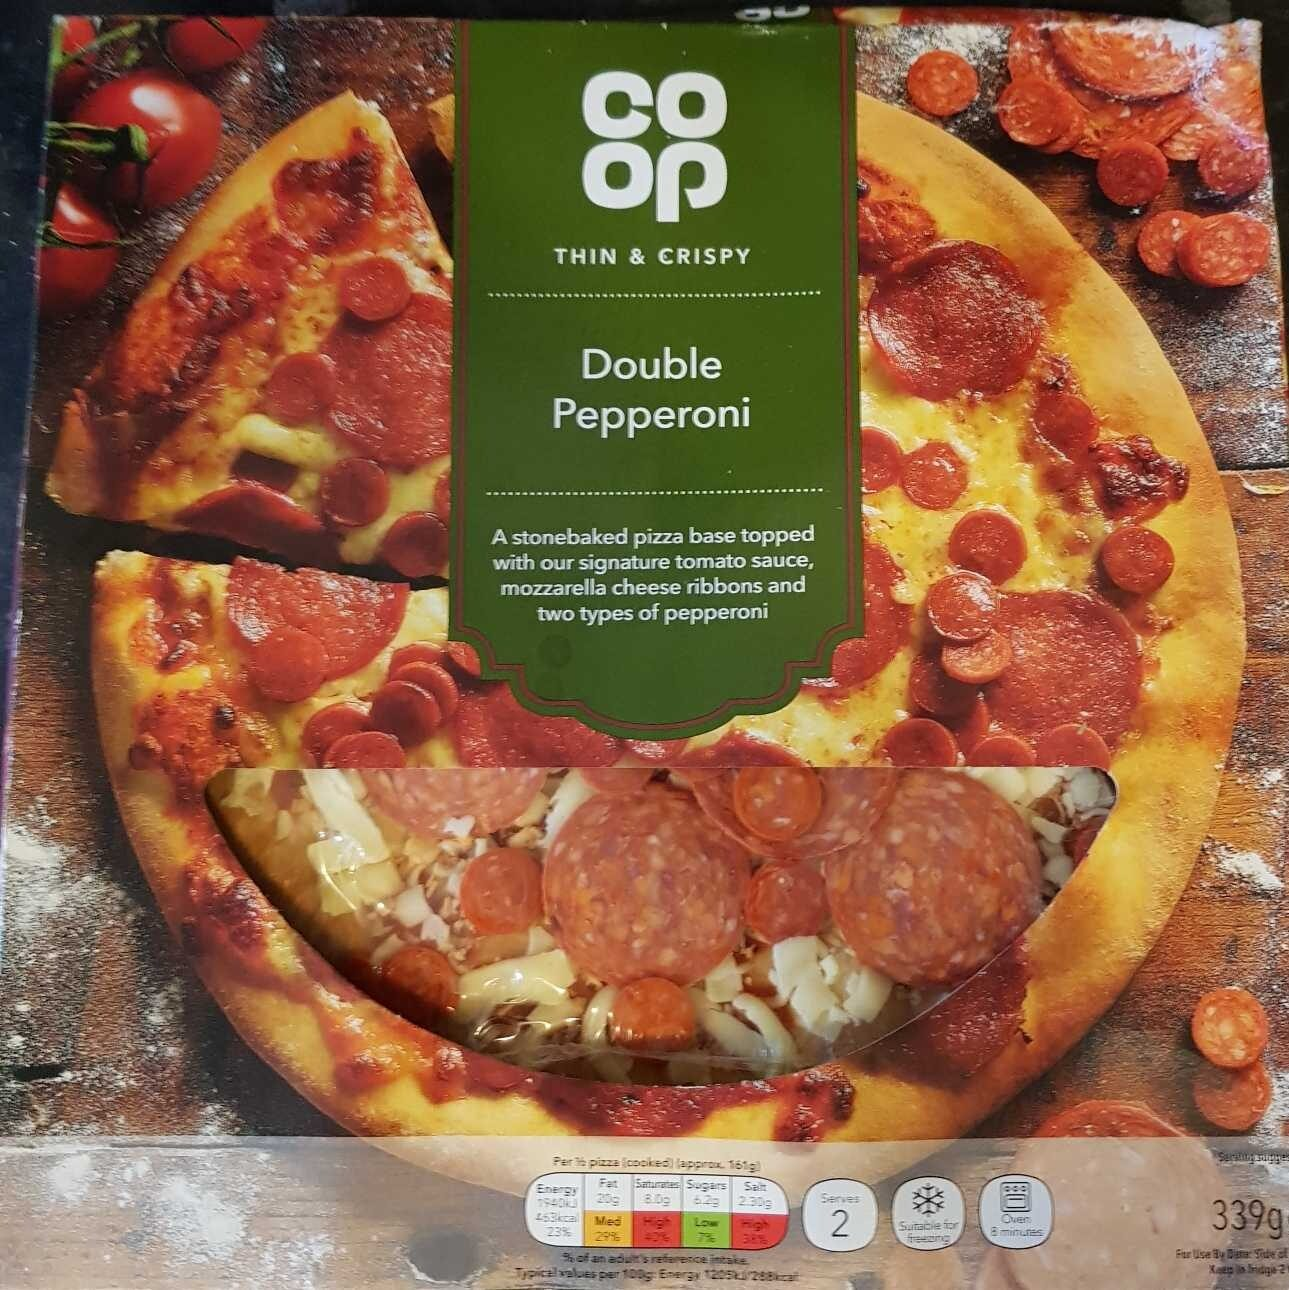 Double Pepperoni Coop